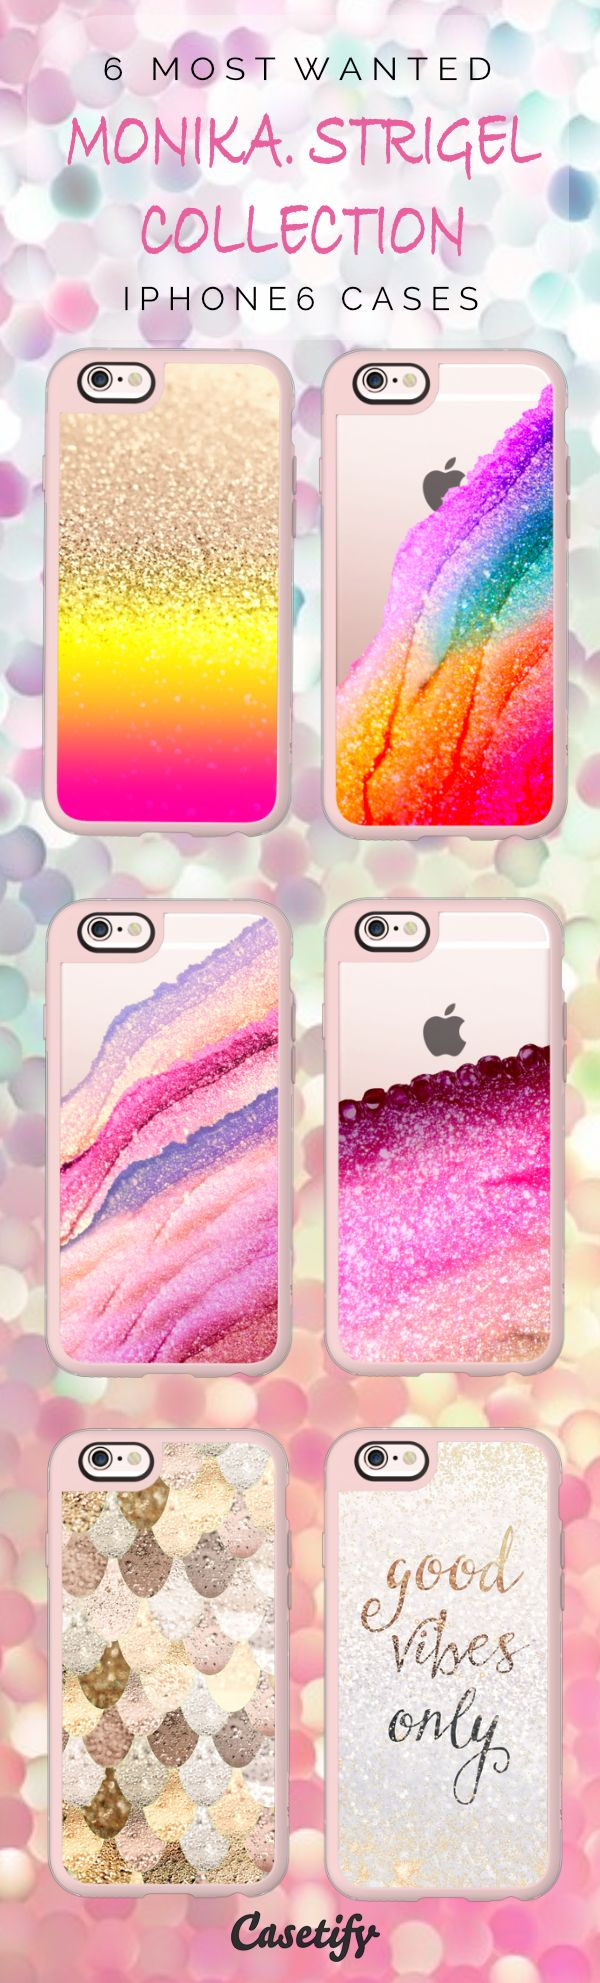 All time favourite iPhone 6 protective phone case designs by Monika Strigel. It's glitter time!    Click through to see more iphone phone case ideas >>> https://www.casetify.com/Monika.Strigel/collection   @casetify